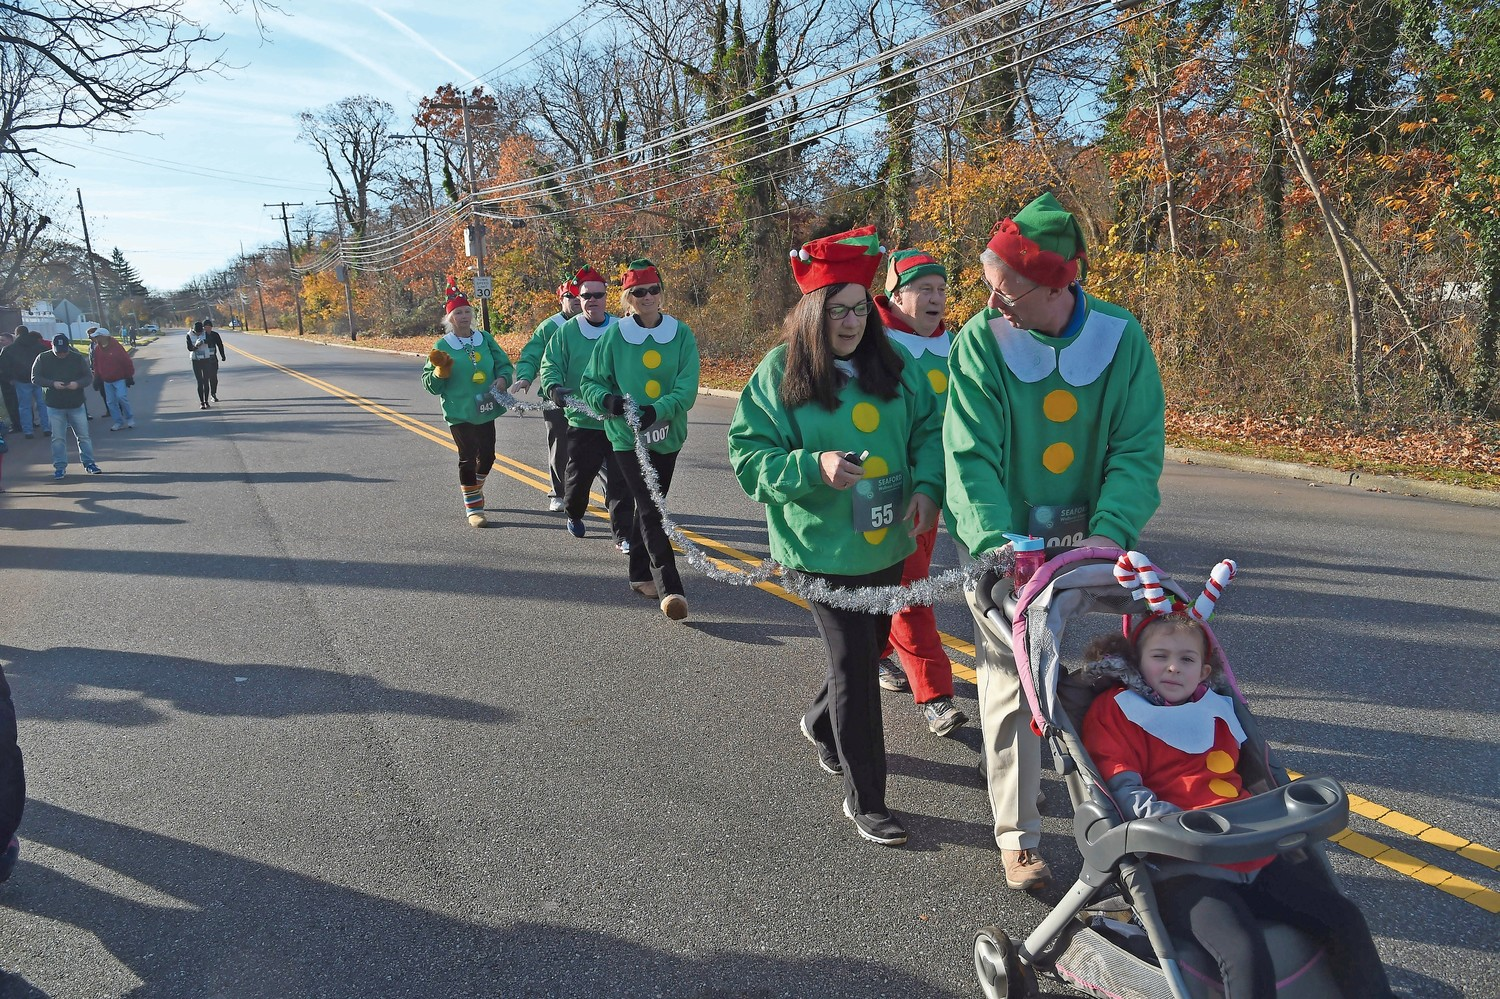 Members of the Seaford Lions Club dressed as elves for the event.